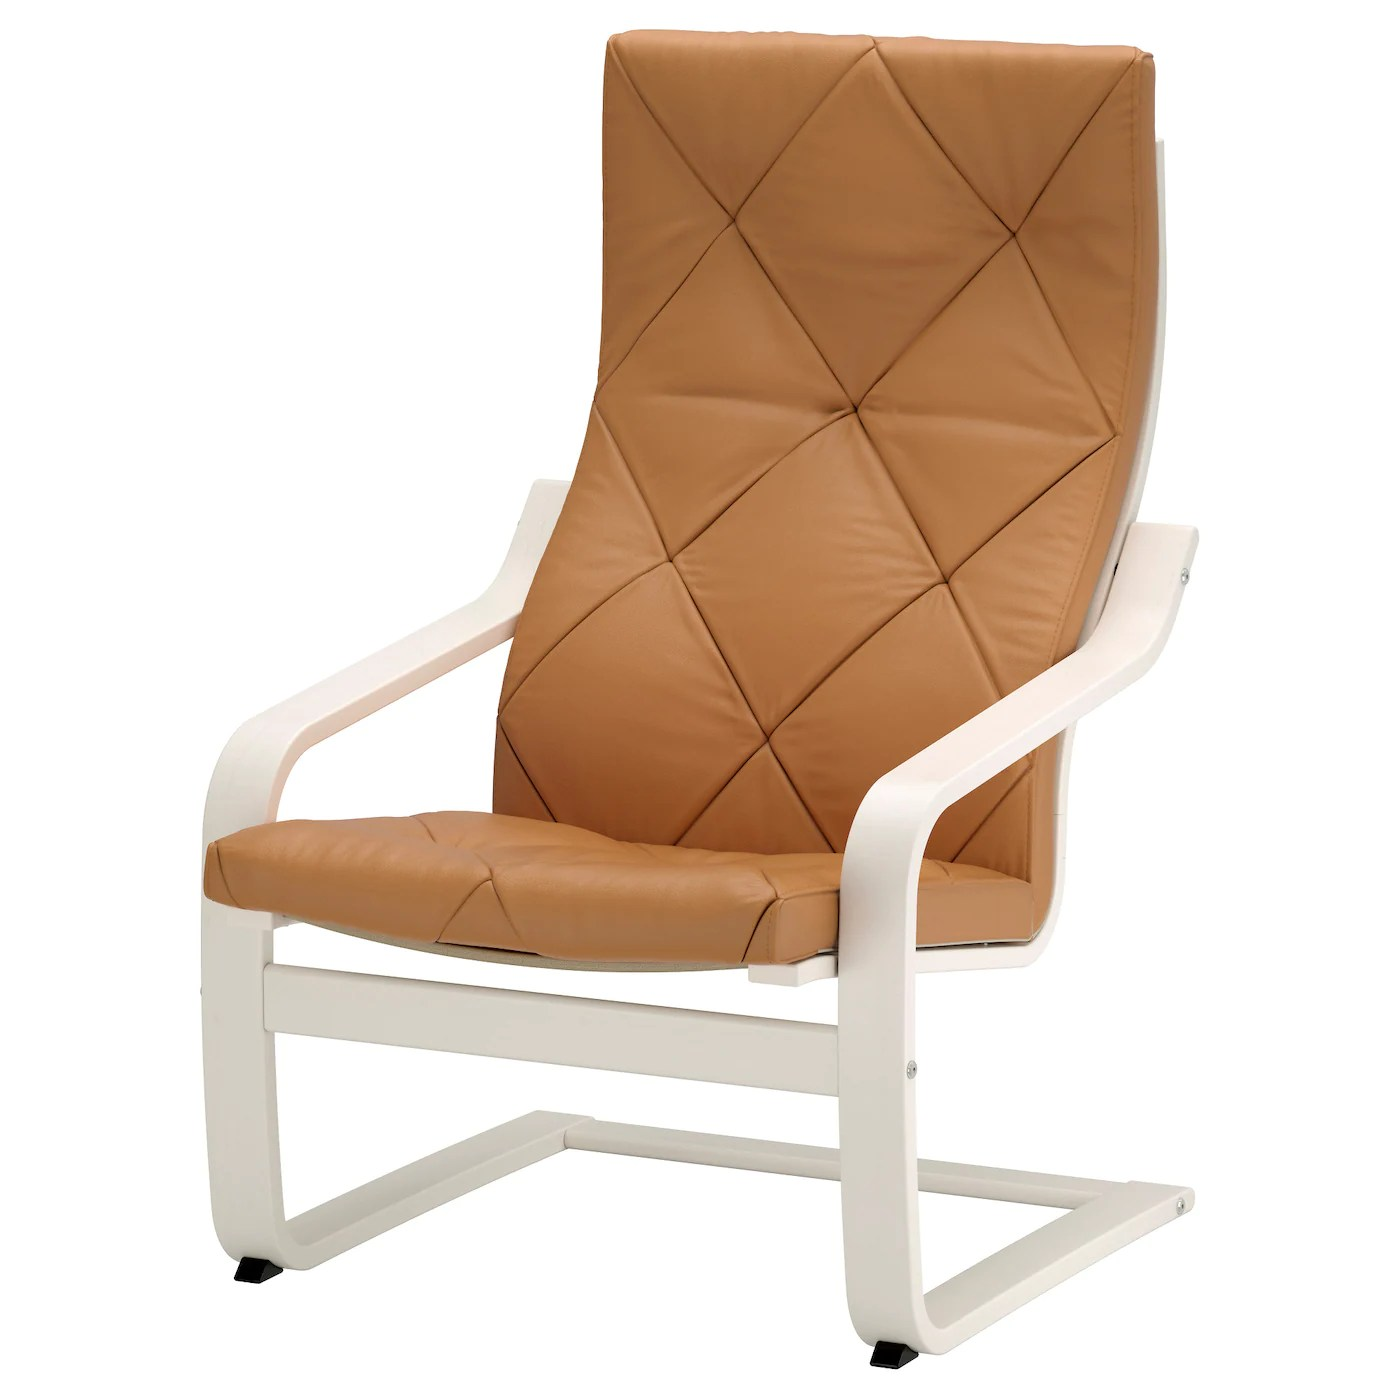 Ikea Pello Sessel Ikea Poang Chair Imgkid The Image Kid Has It